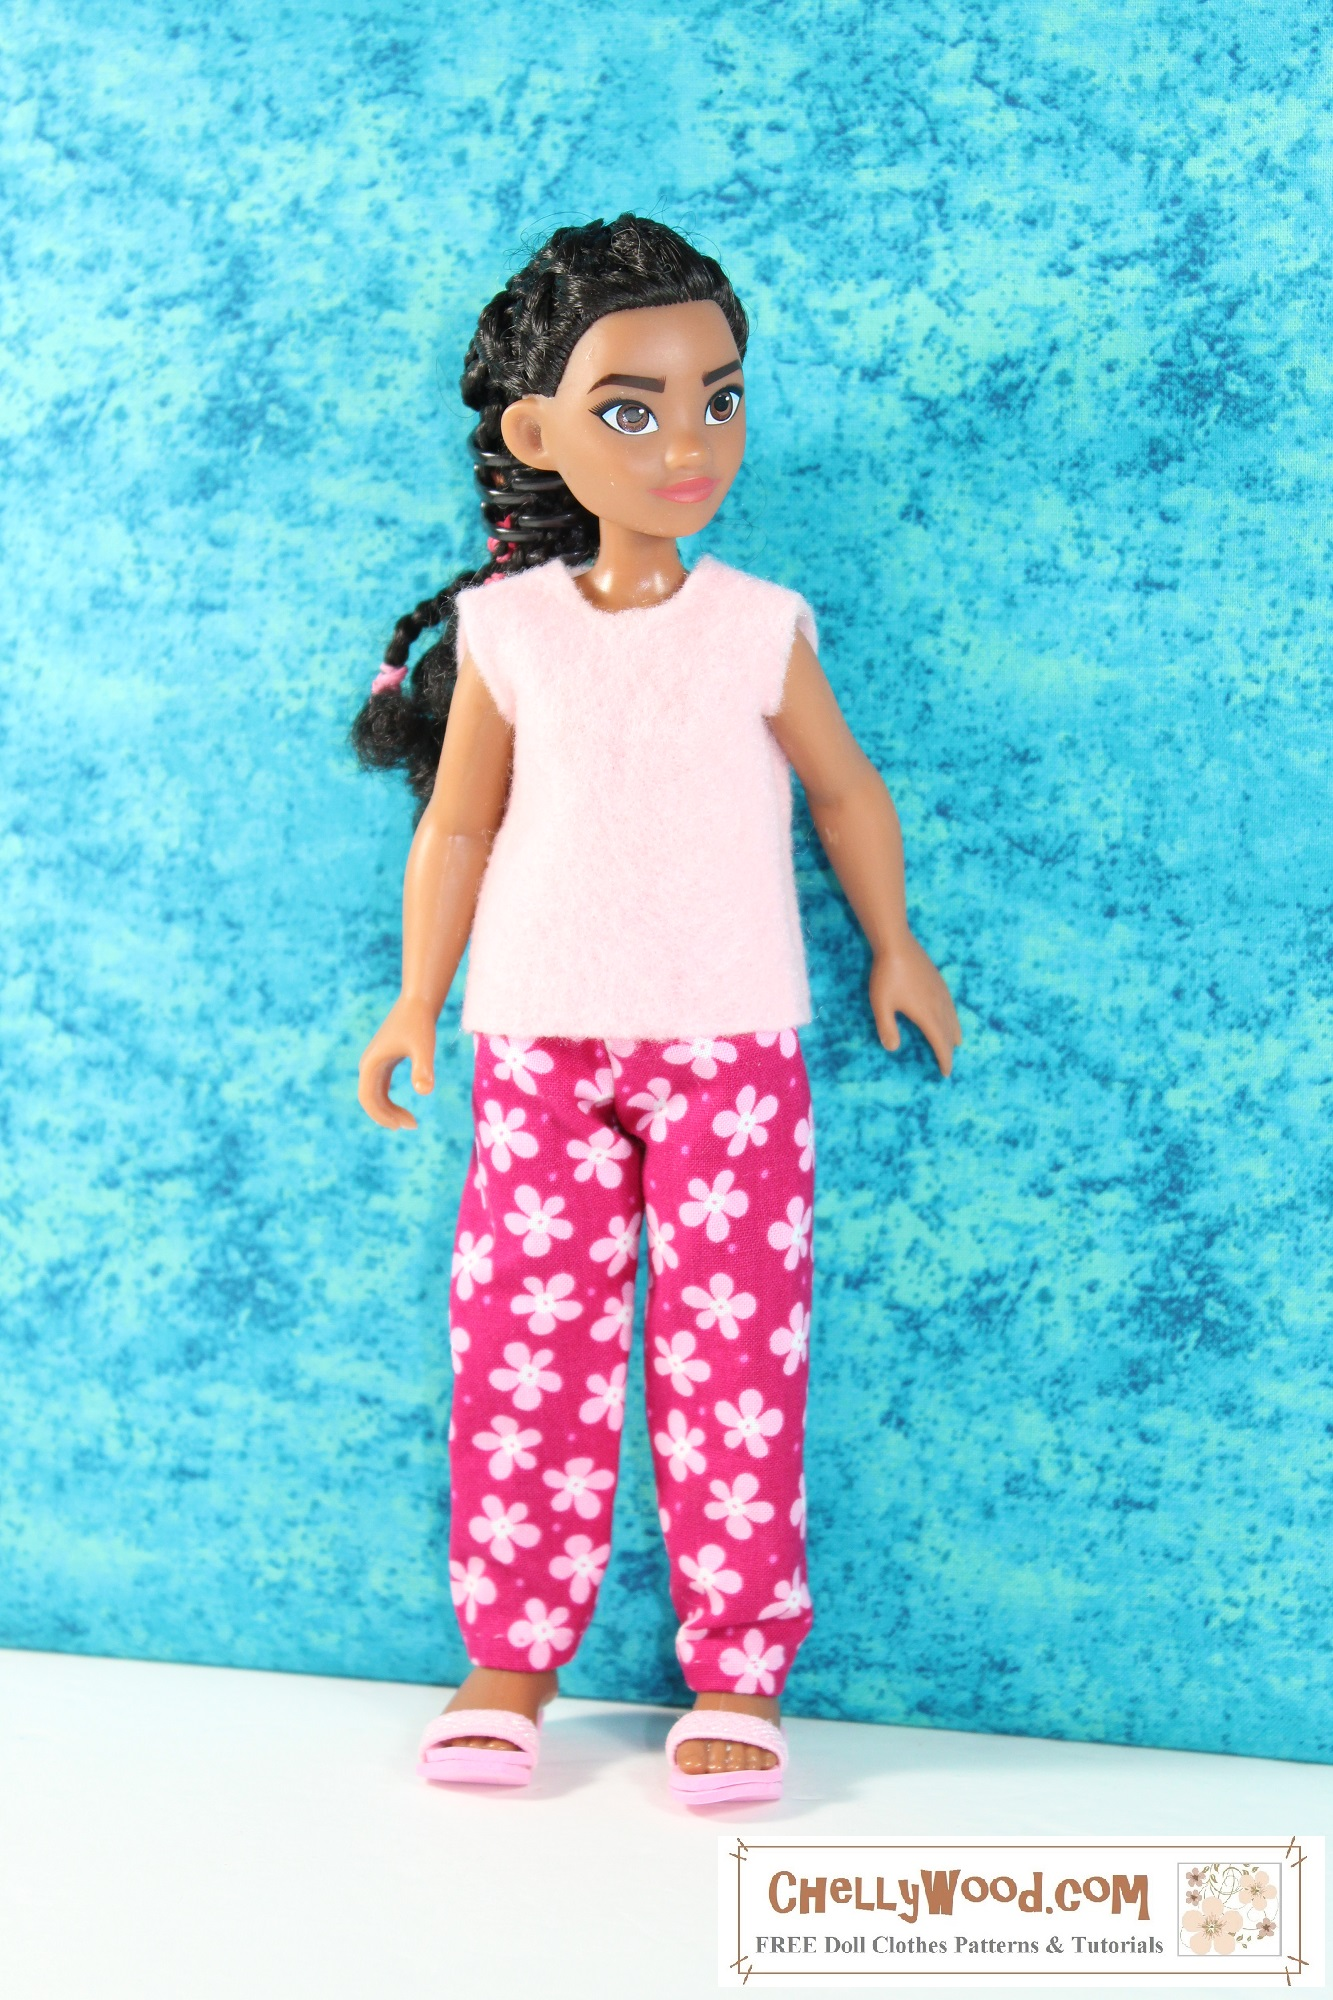 Here we see a little 10 inch Moana doll modeling handmade clothes, including a super-easy-to-sew felt shirt and a pair of elastic waist pants. The pink felt shirt coordinates nicely with the pink floral print of the pants. The little doll's hair is swept back from her face in a cascade of tiny braids, and she looks slightly to her left, avoiding the camera. She stands in front of a blue backdrop that's mottled like the Caribbean Sea. If you'd like to make this outfit for your Moana doll, please click on the link in the caption. It will take you to a page where you can find free printable PDF sewing patterns and easy-to-follow sewing tutorial videos that will help you sew this outfit, using the free printable patterns at ChellyWood.com